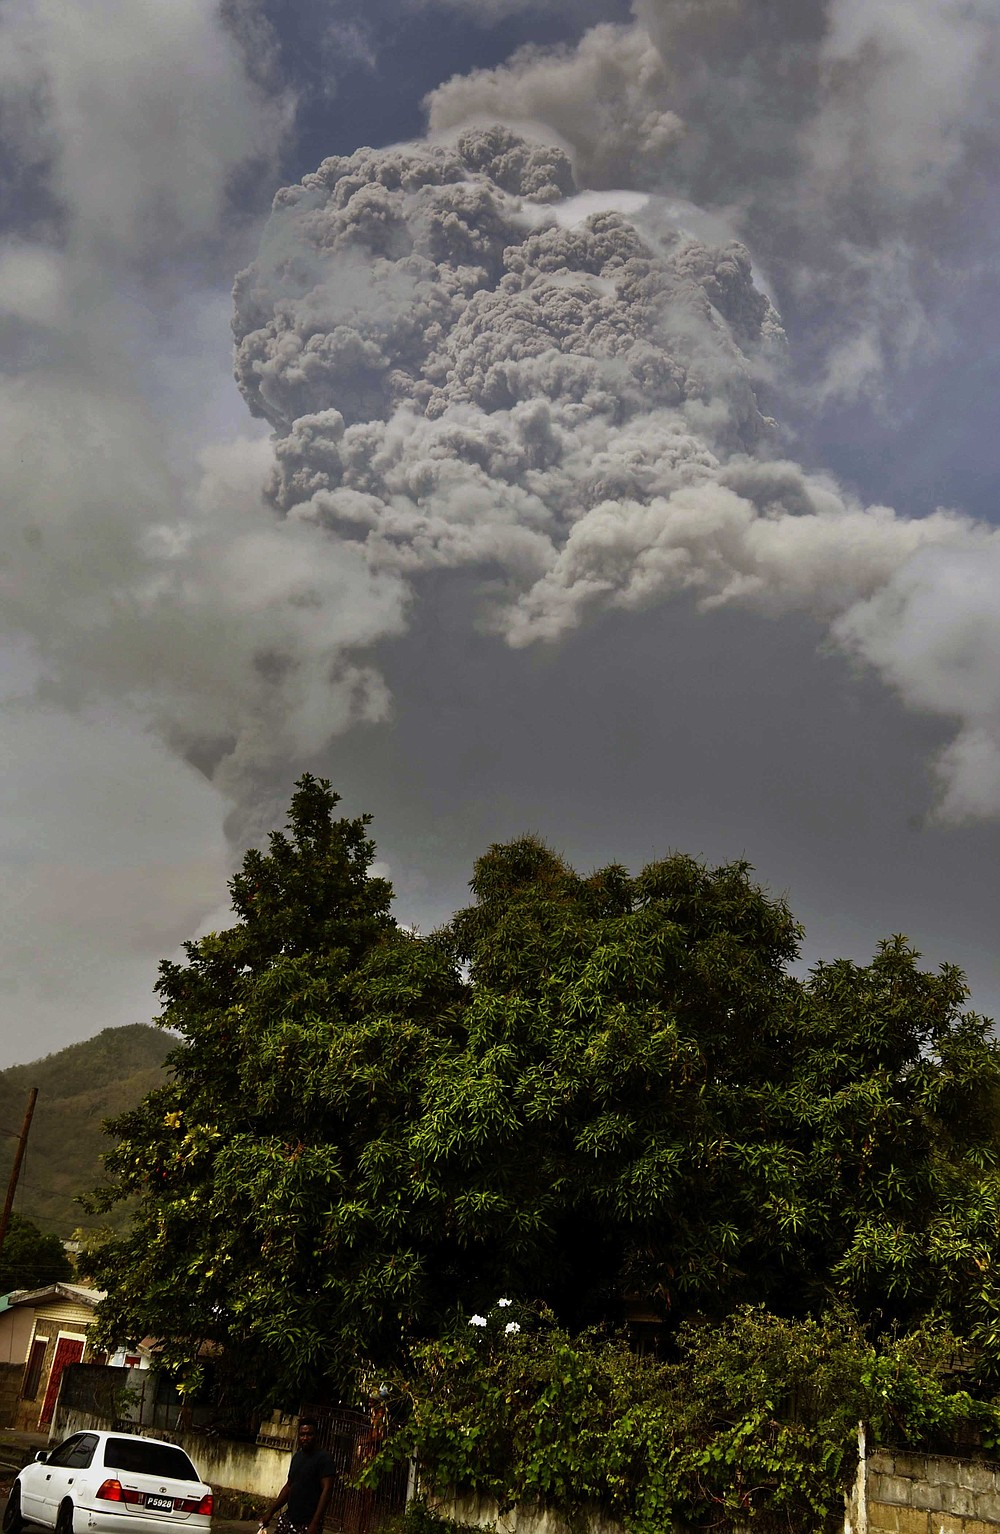 Plumes of ash rise from the La Soufriere volcano as it erupts on the eastern Caribbean island of St. Vincent, as seen from Chateaubelair, Friday, April 9, 2021. (AP Photo/Orvil Samuel)